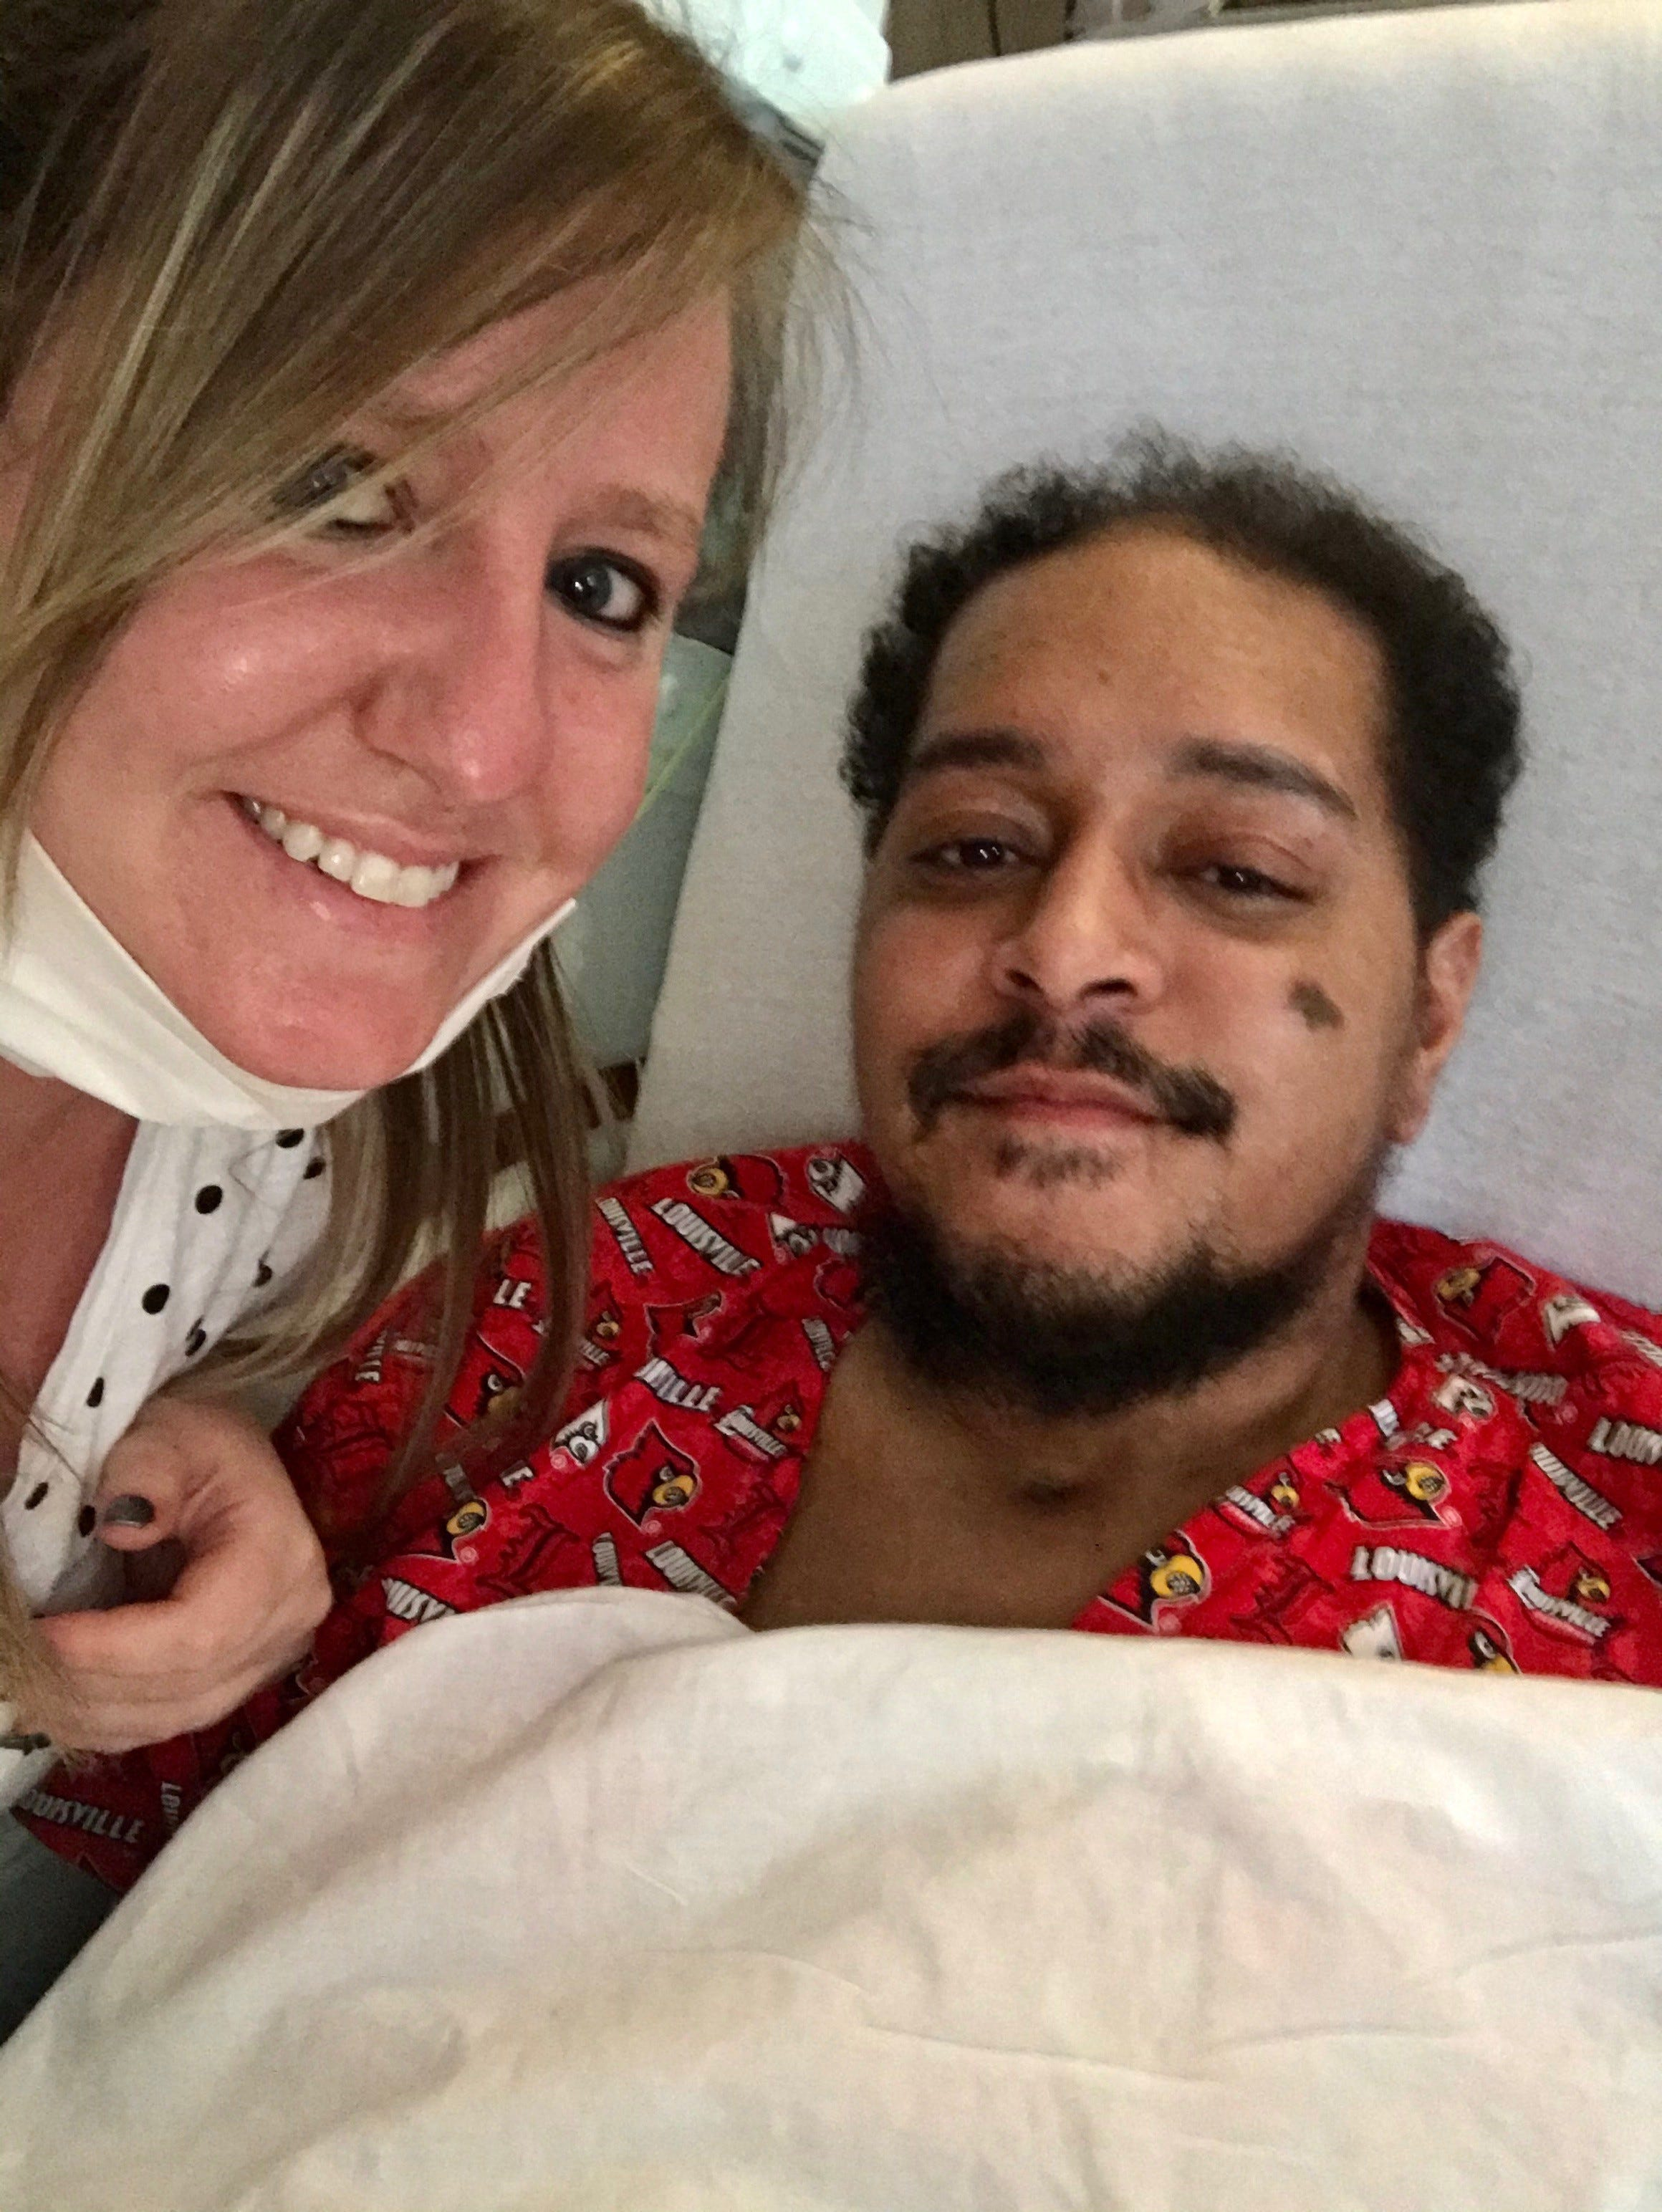 Demetrius Booker takes a selfie with his girlfriend, Michelle Bair, just before being transferred from Kindred Hospital to Baptist Health Louisville.